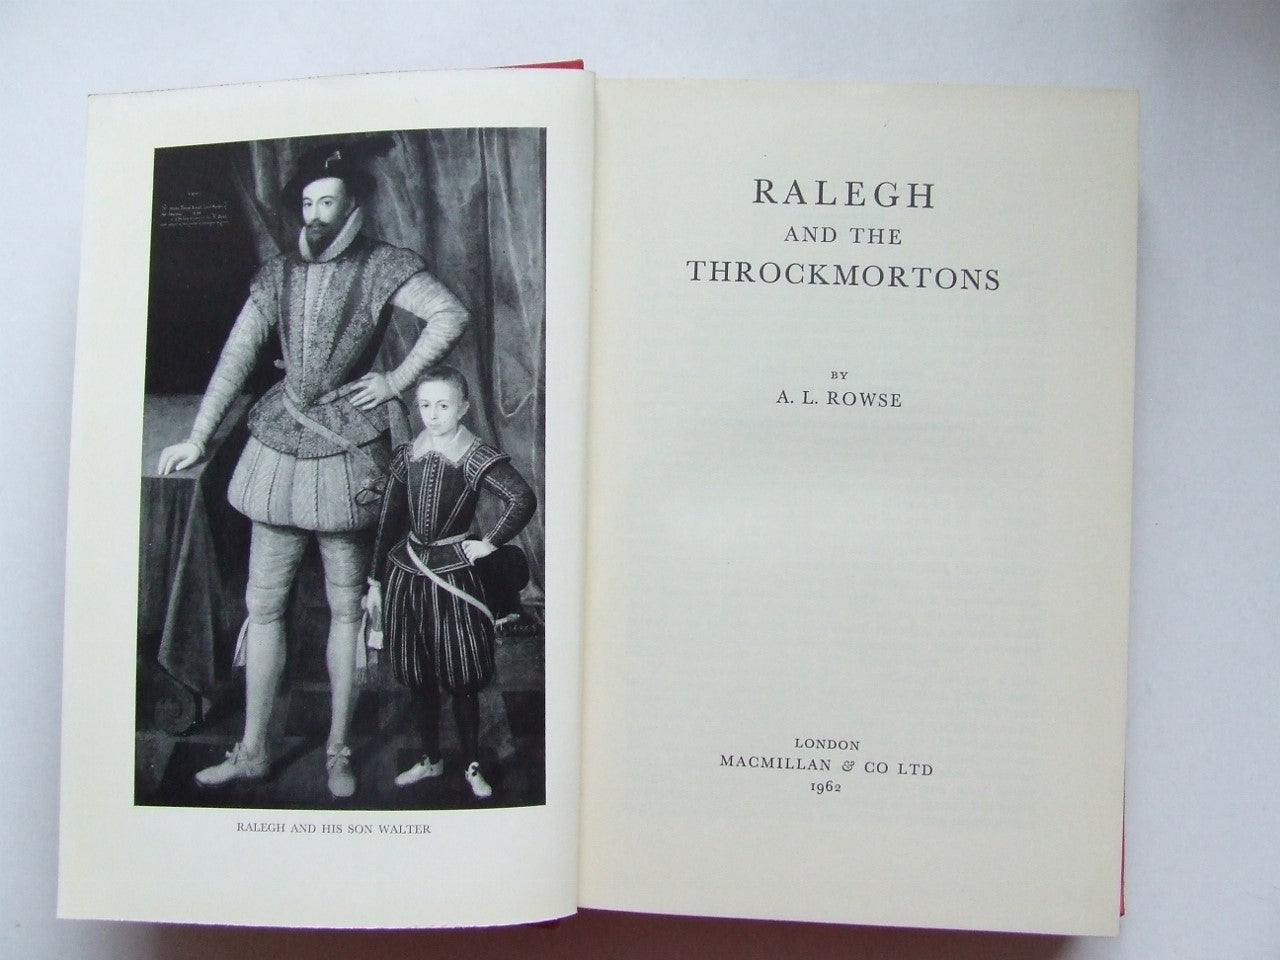 Ralegh and the Throckmortons